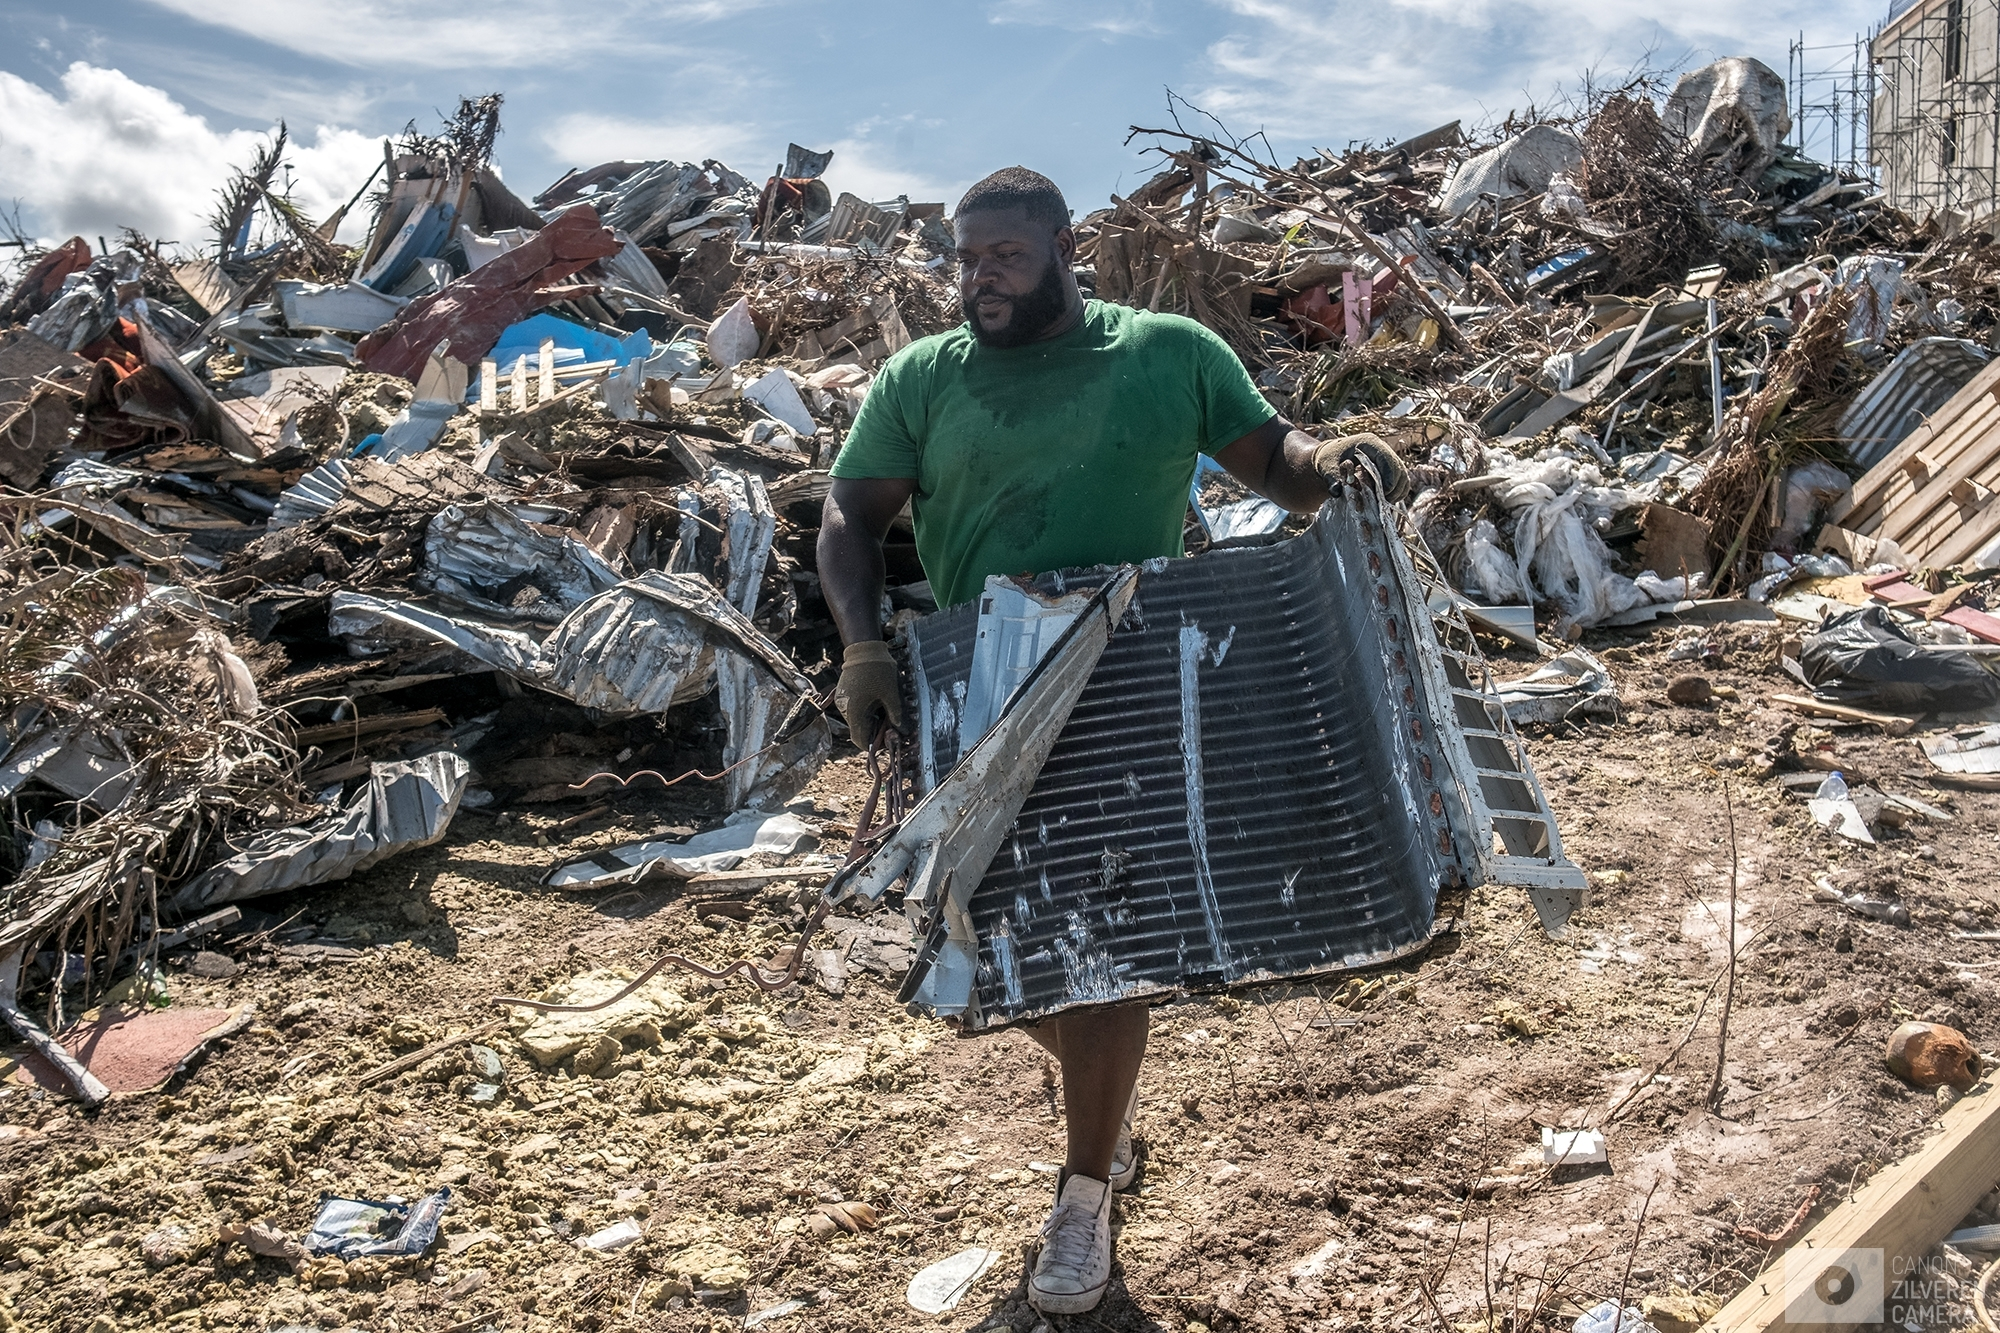 SINT MAARTEN | A man is collecting recycable parts from a landfill full of lefovers from damaged buildings. | #5